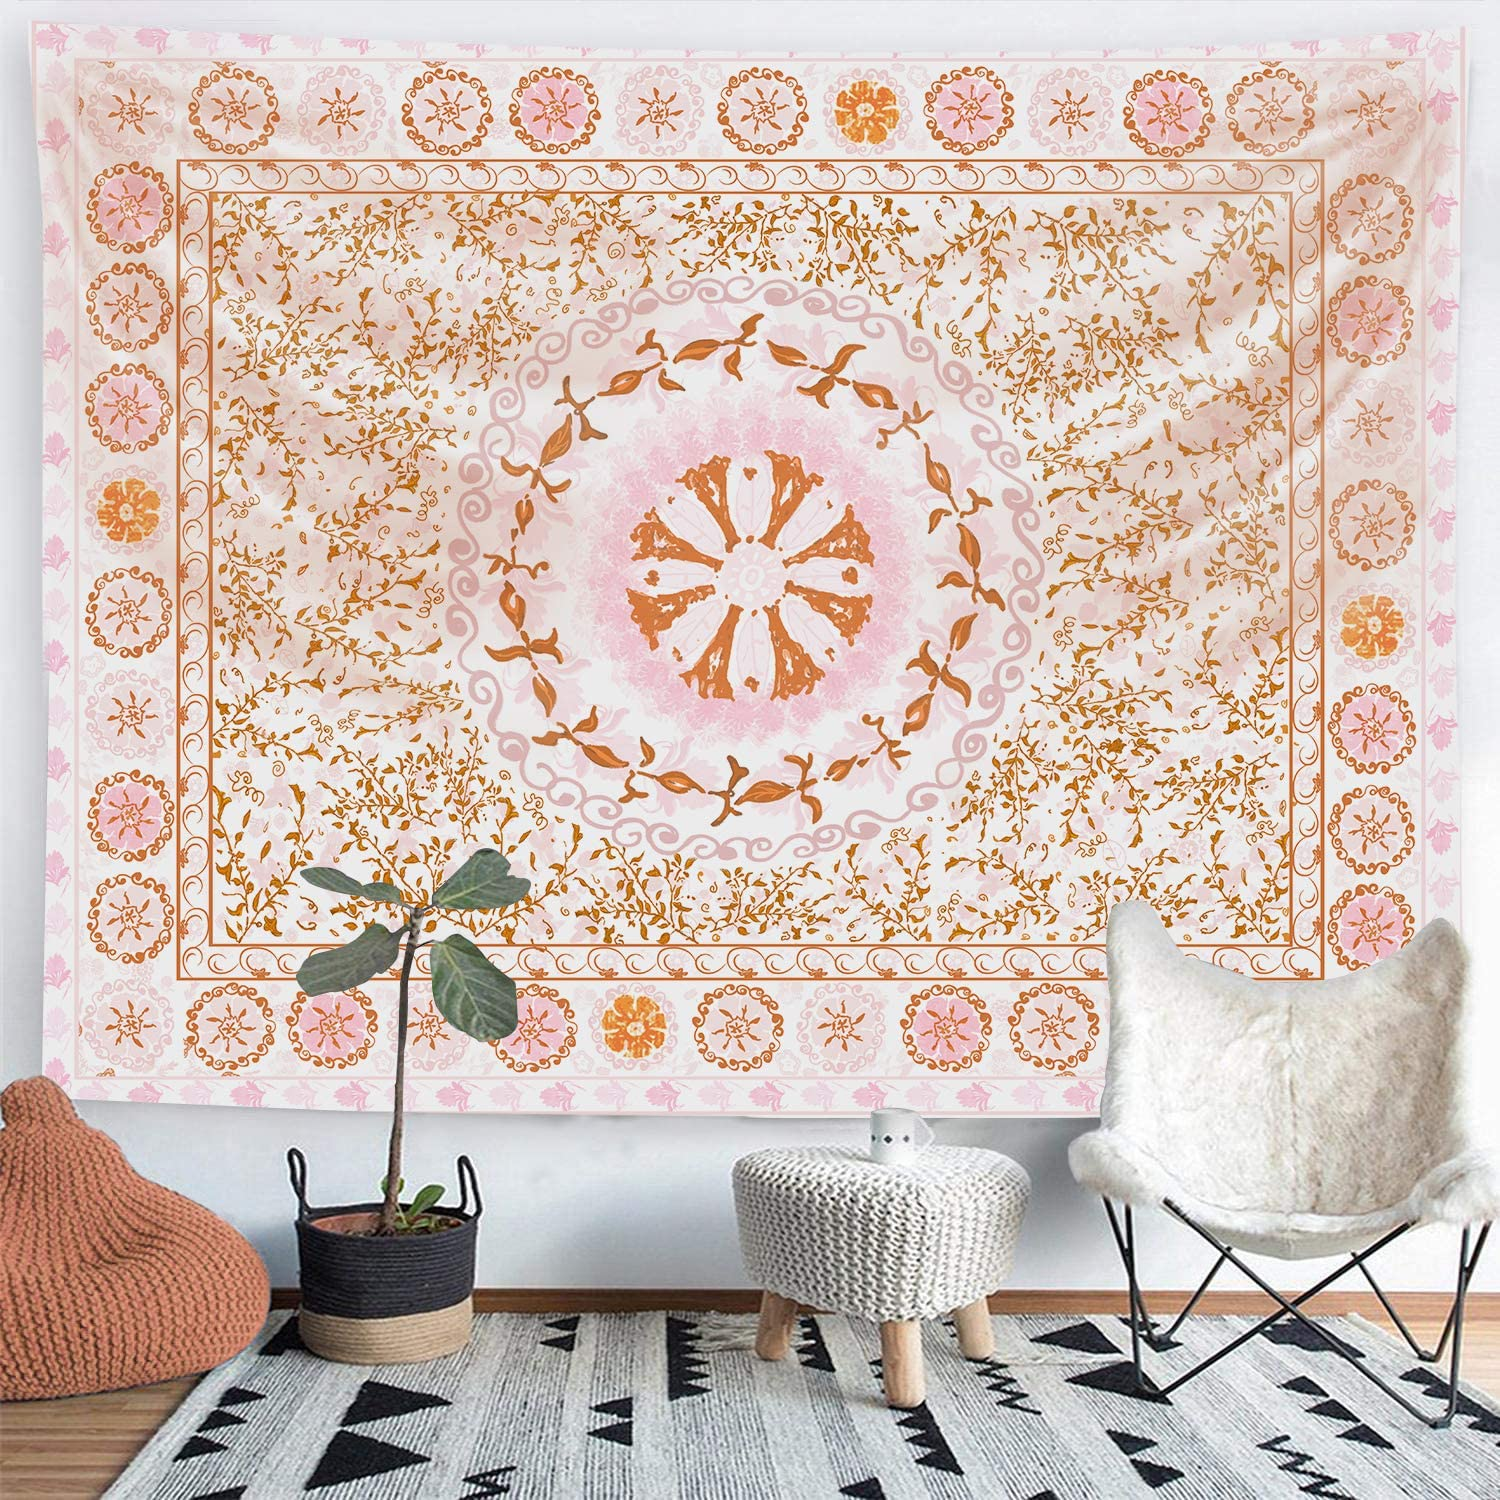 Funeon Mandala Floral Tapestry Wall Hanging Small Orange Pink Flower Tapestry Boho Medallion Tapestry for Teen Girls Indie Room Dorm Wall Decor Aesthetic Cute College Tapestry Vertical 51x60 inches